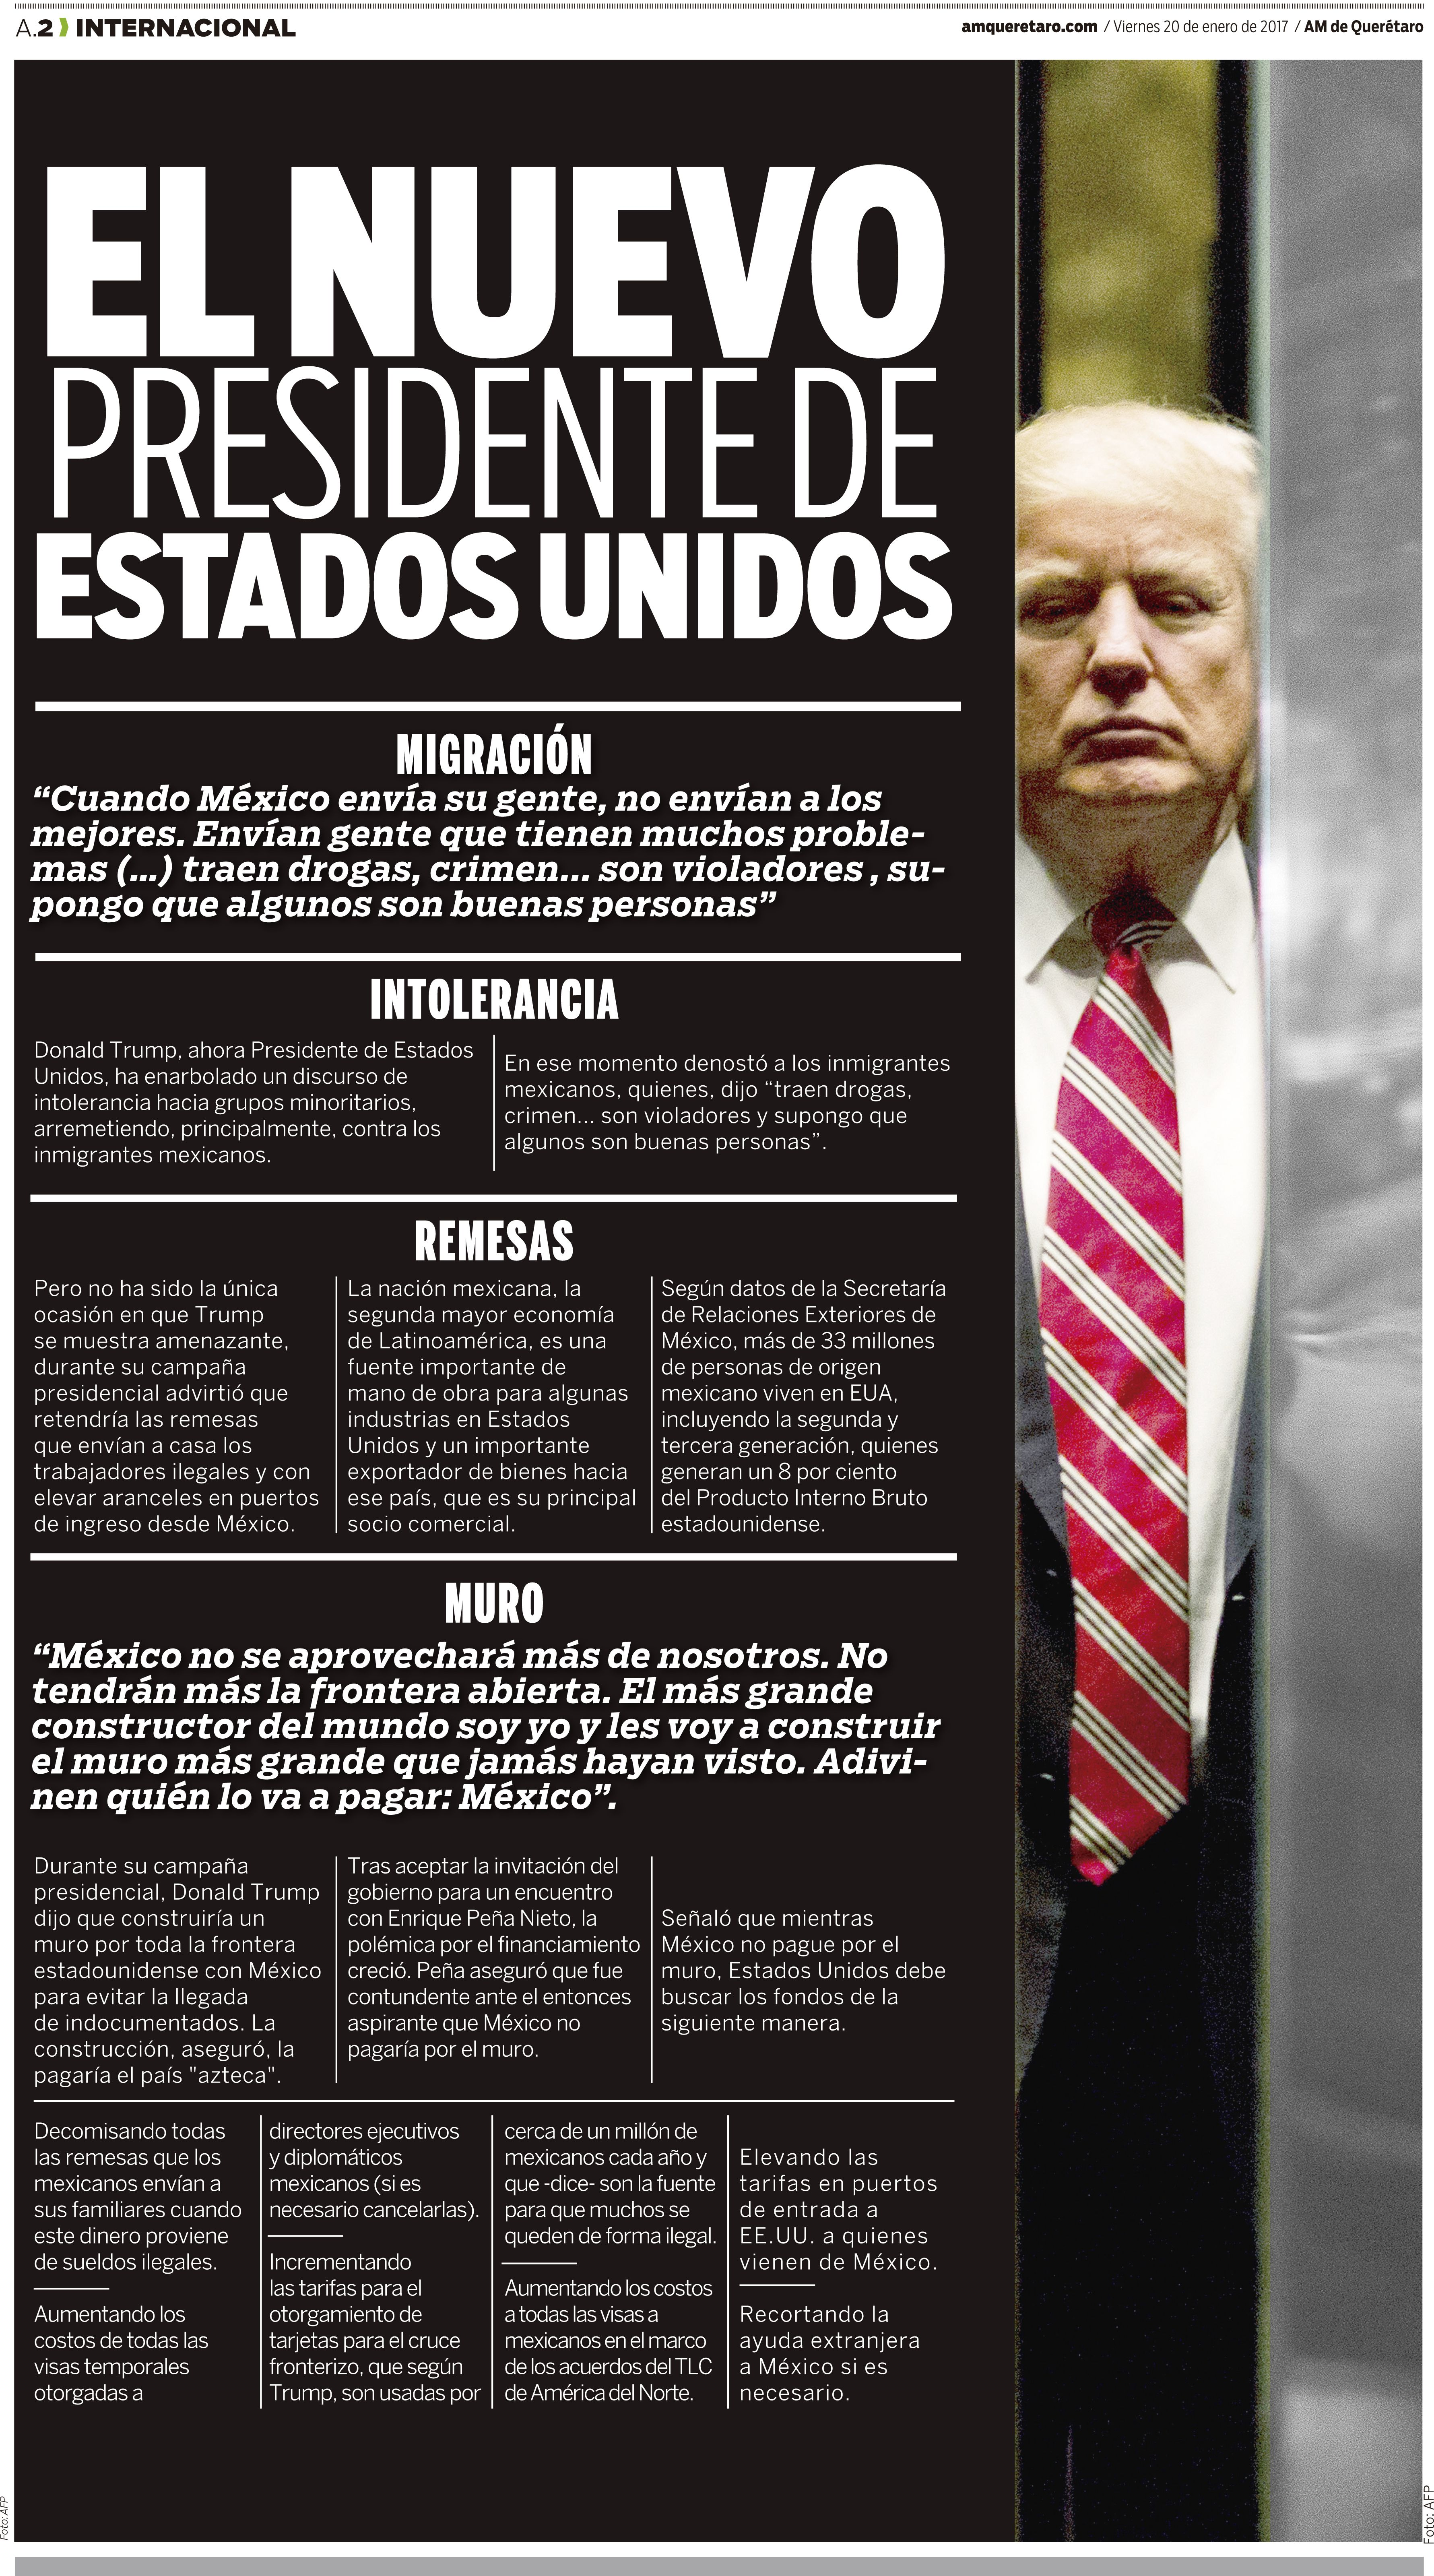 Pin by Marco Gonzalez on Periodico AM de Querétaro | Pinterest